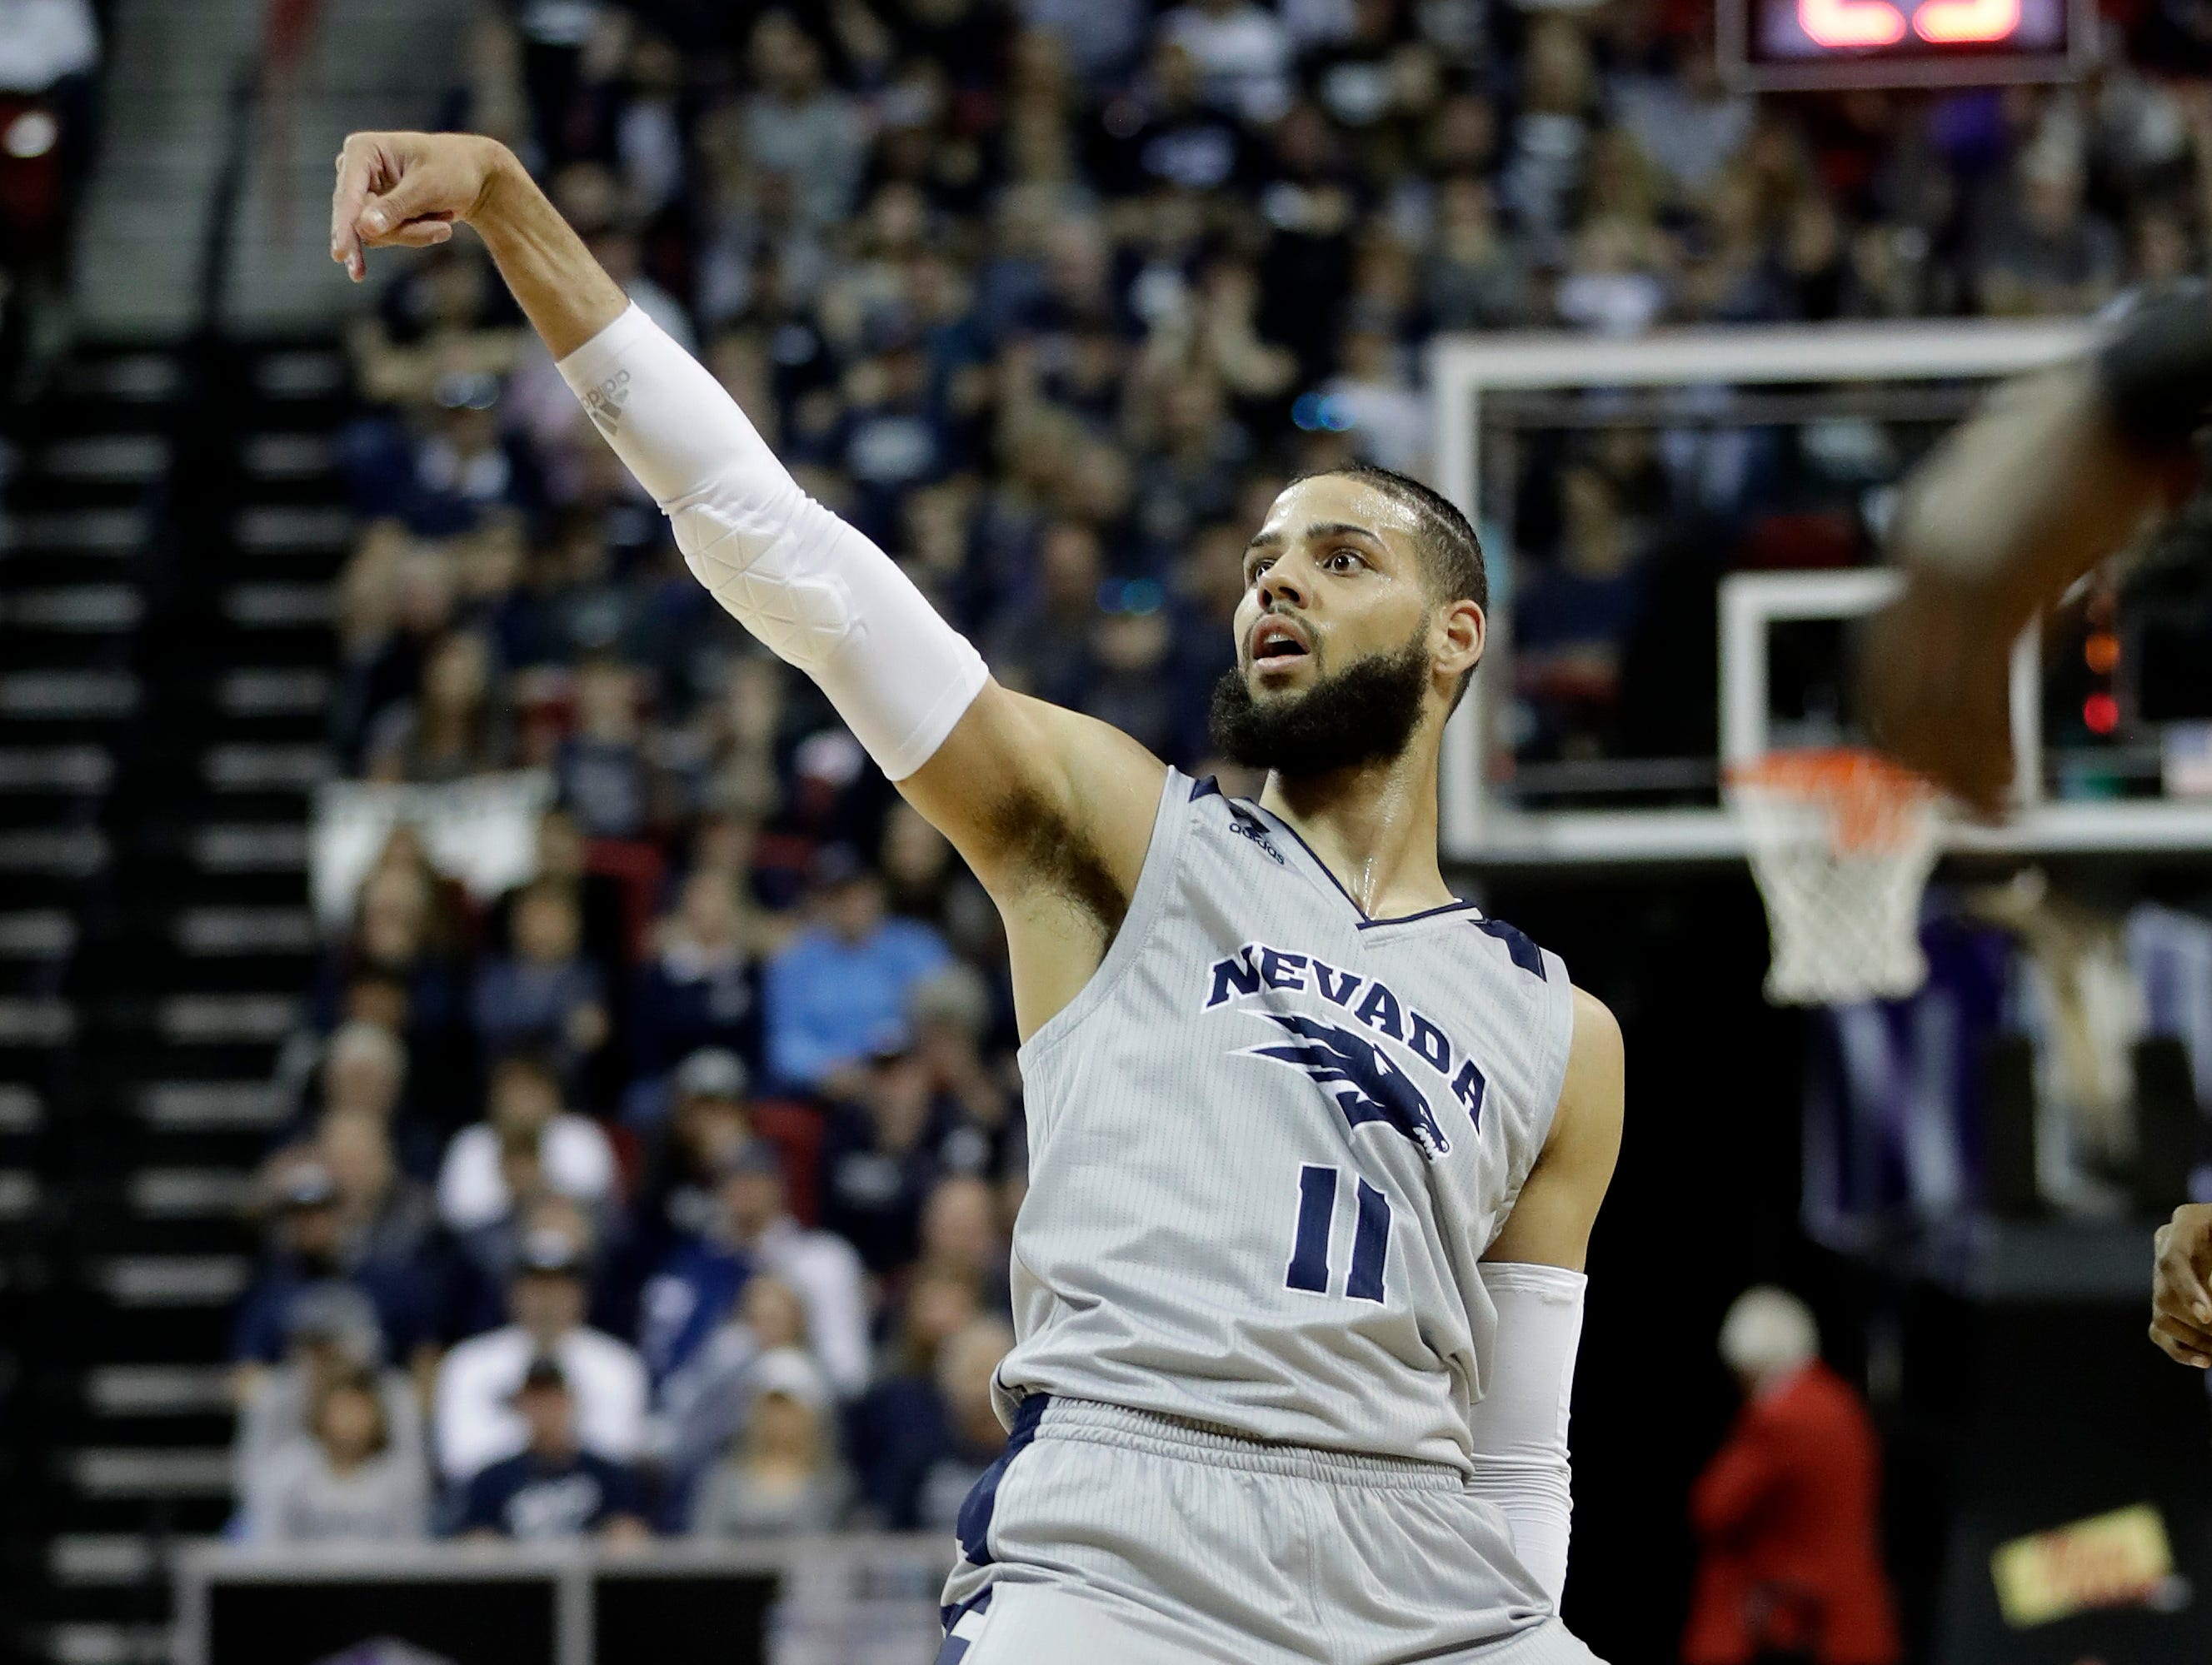 Nevada's Cody Martin watches after his shot during the first half of an NCAA college basketball game against San Diego State in the Mountain West Conference men's tournament Friday, March 15, 2019, in Las Vegas.